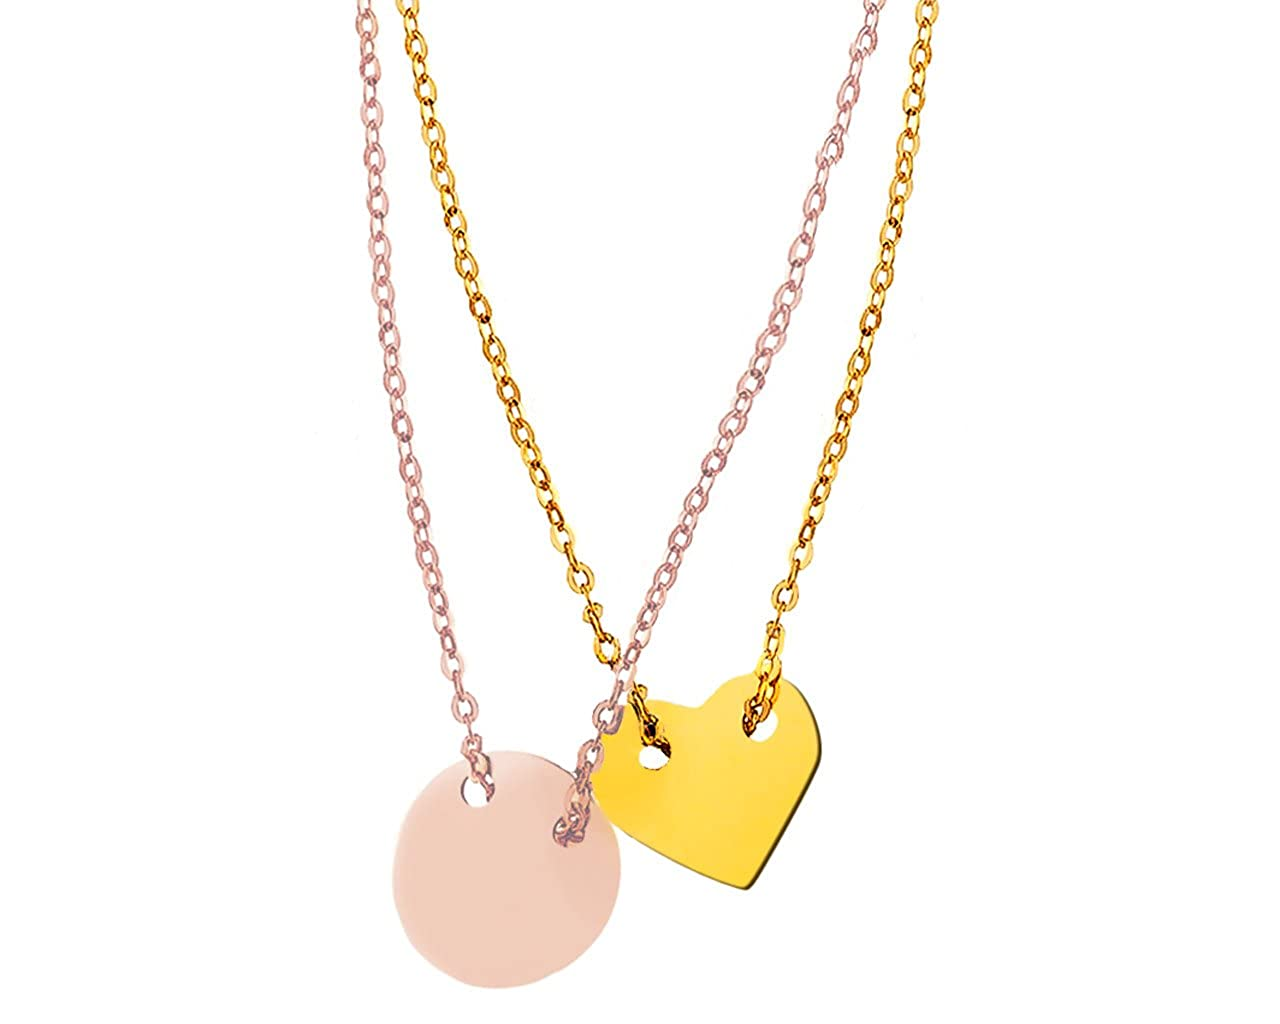 Circle Of Life Celebrity Style 18k Rose Gold Vermeil  45cm Chain Necklace.